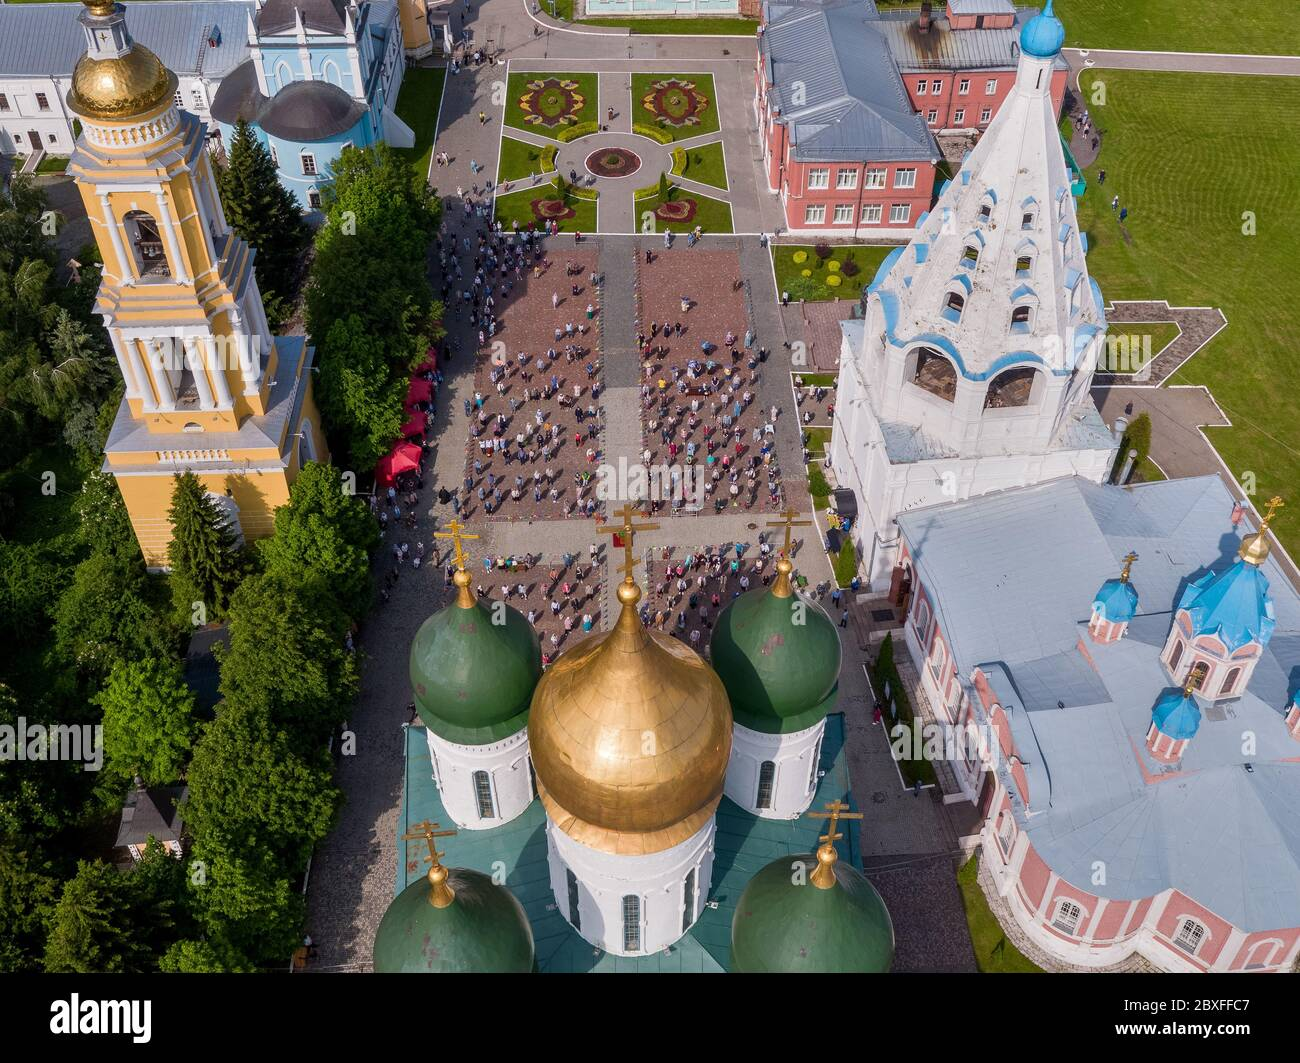 Kolomna, Moscow Region, Russia. 7th June, 2020. An aerial view of believers observing social distancing in front of the Assumption Cathedral during a religious service. On 21 May 2020, the Moscow Region authorities allowed people to take part in outdoor religious services and visit churches outside service hours. Credit: Dmitry Serebryakov/TASS/Alamy Live News Stock Photo